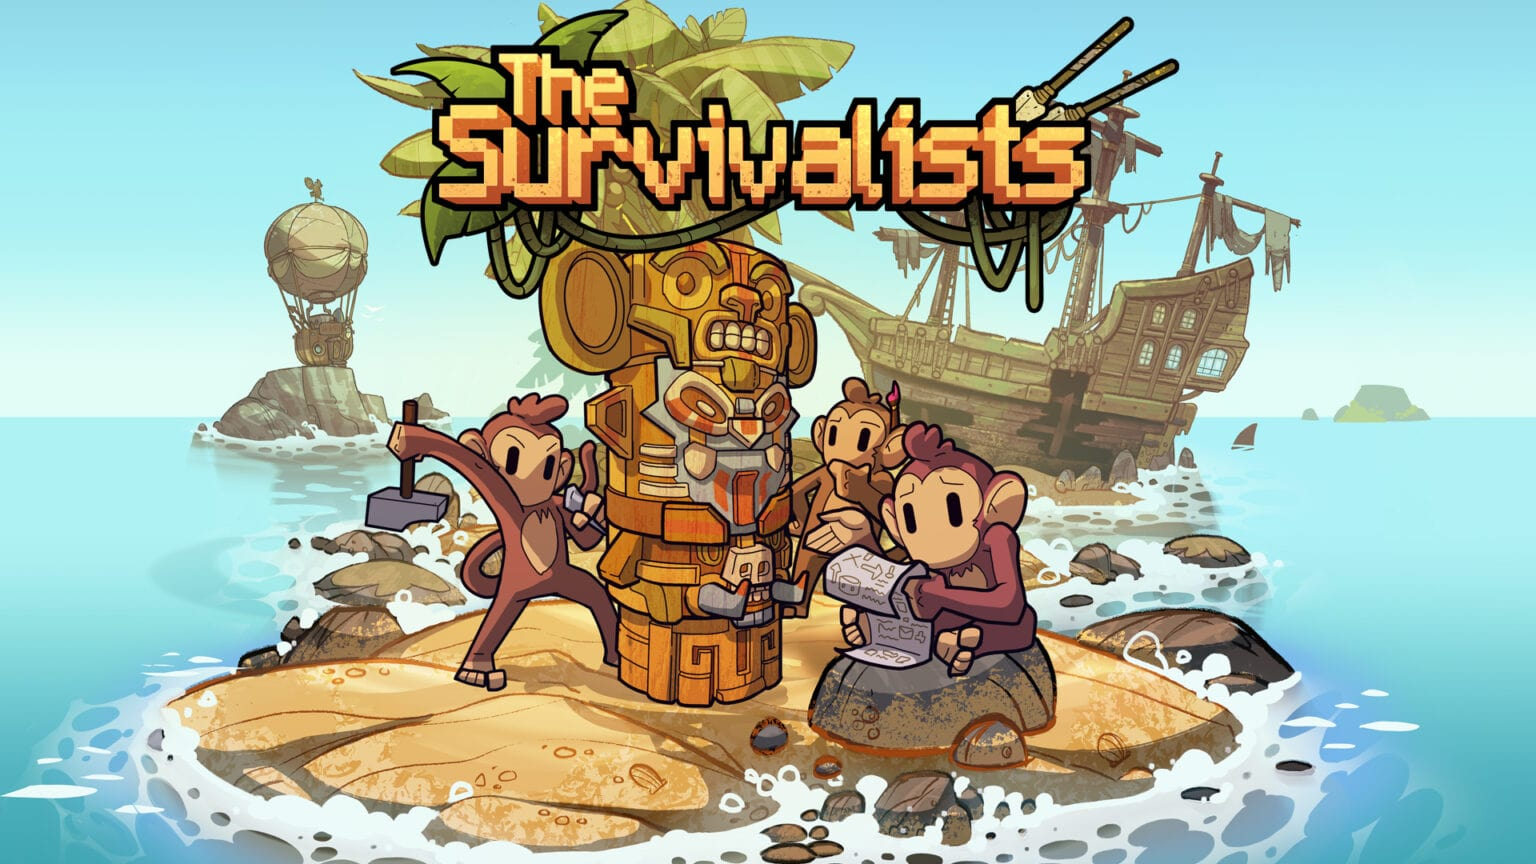 'The Survivalists' debuted Friday on Apple Arcade